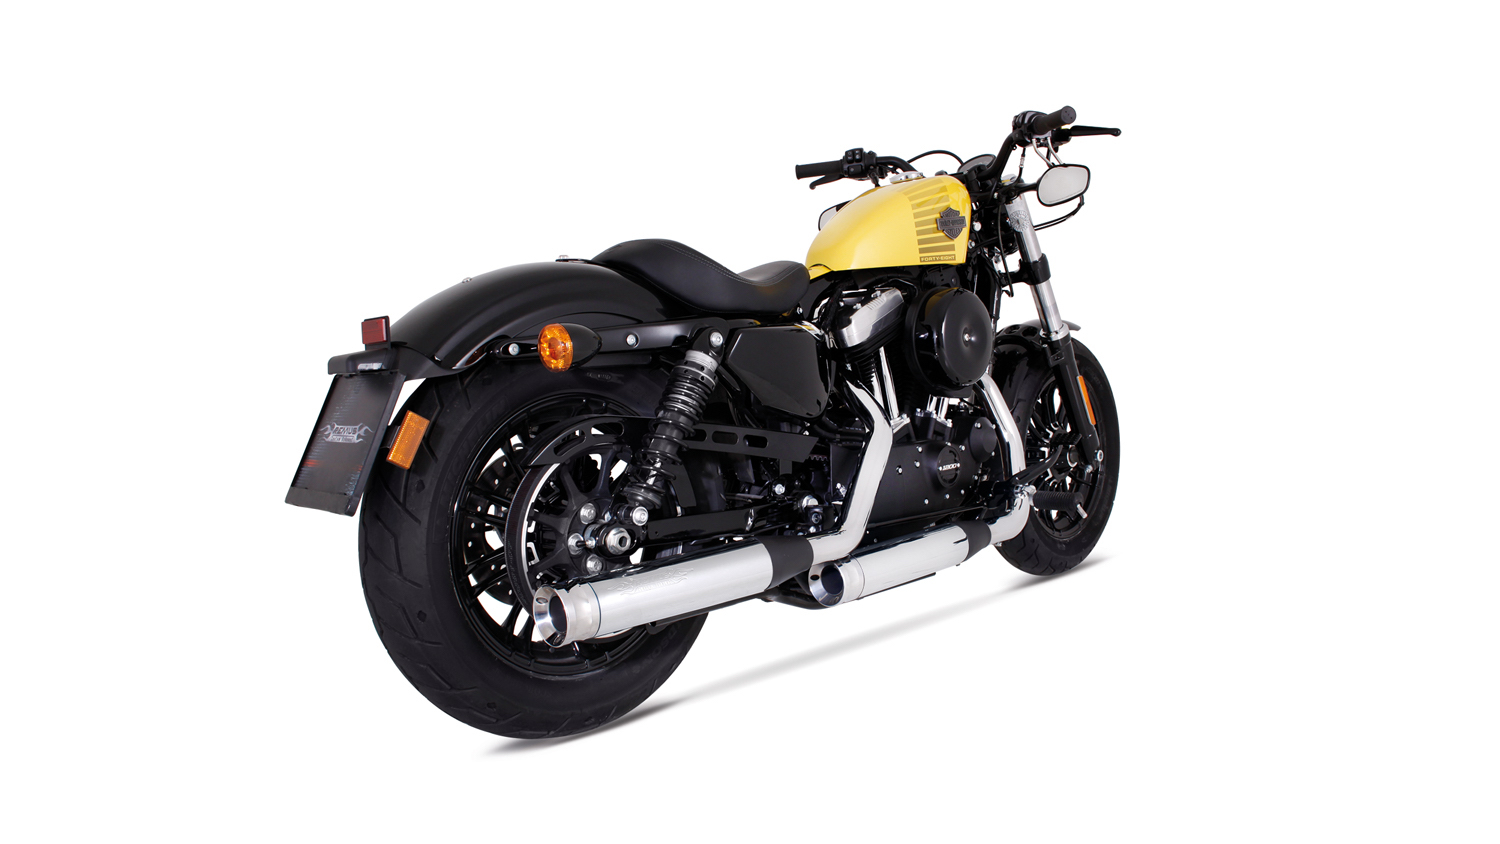 remus news bike info 24 16 harley davidson sportster. Black Bedroom Furniture Sets. Home Design Ideas